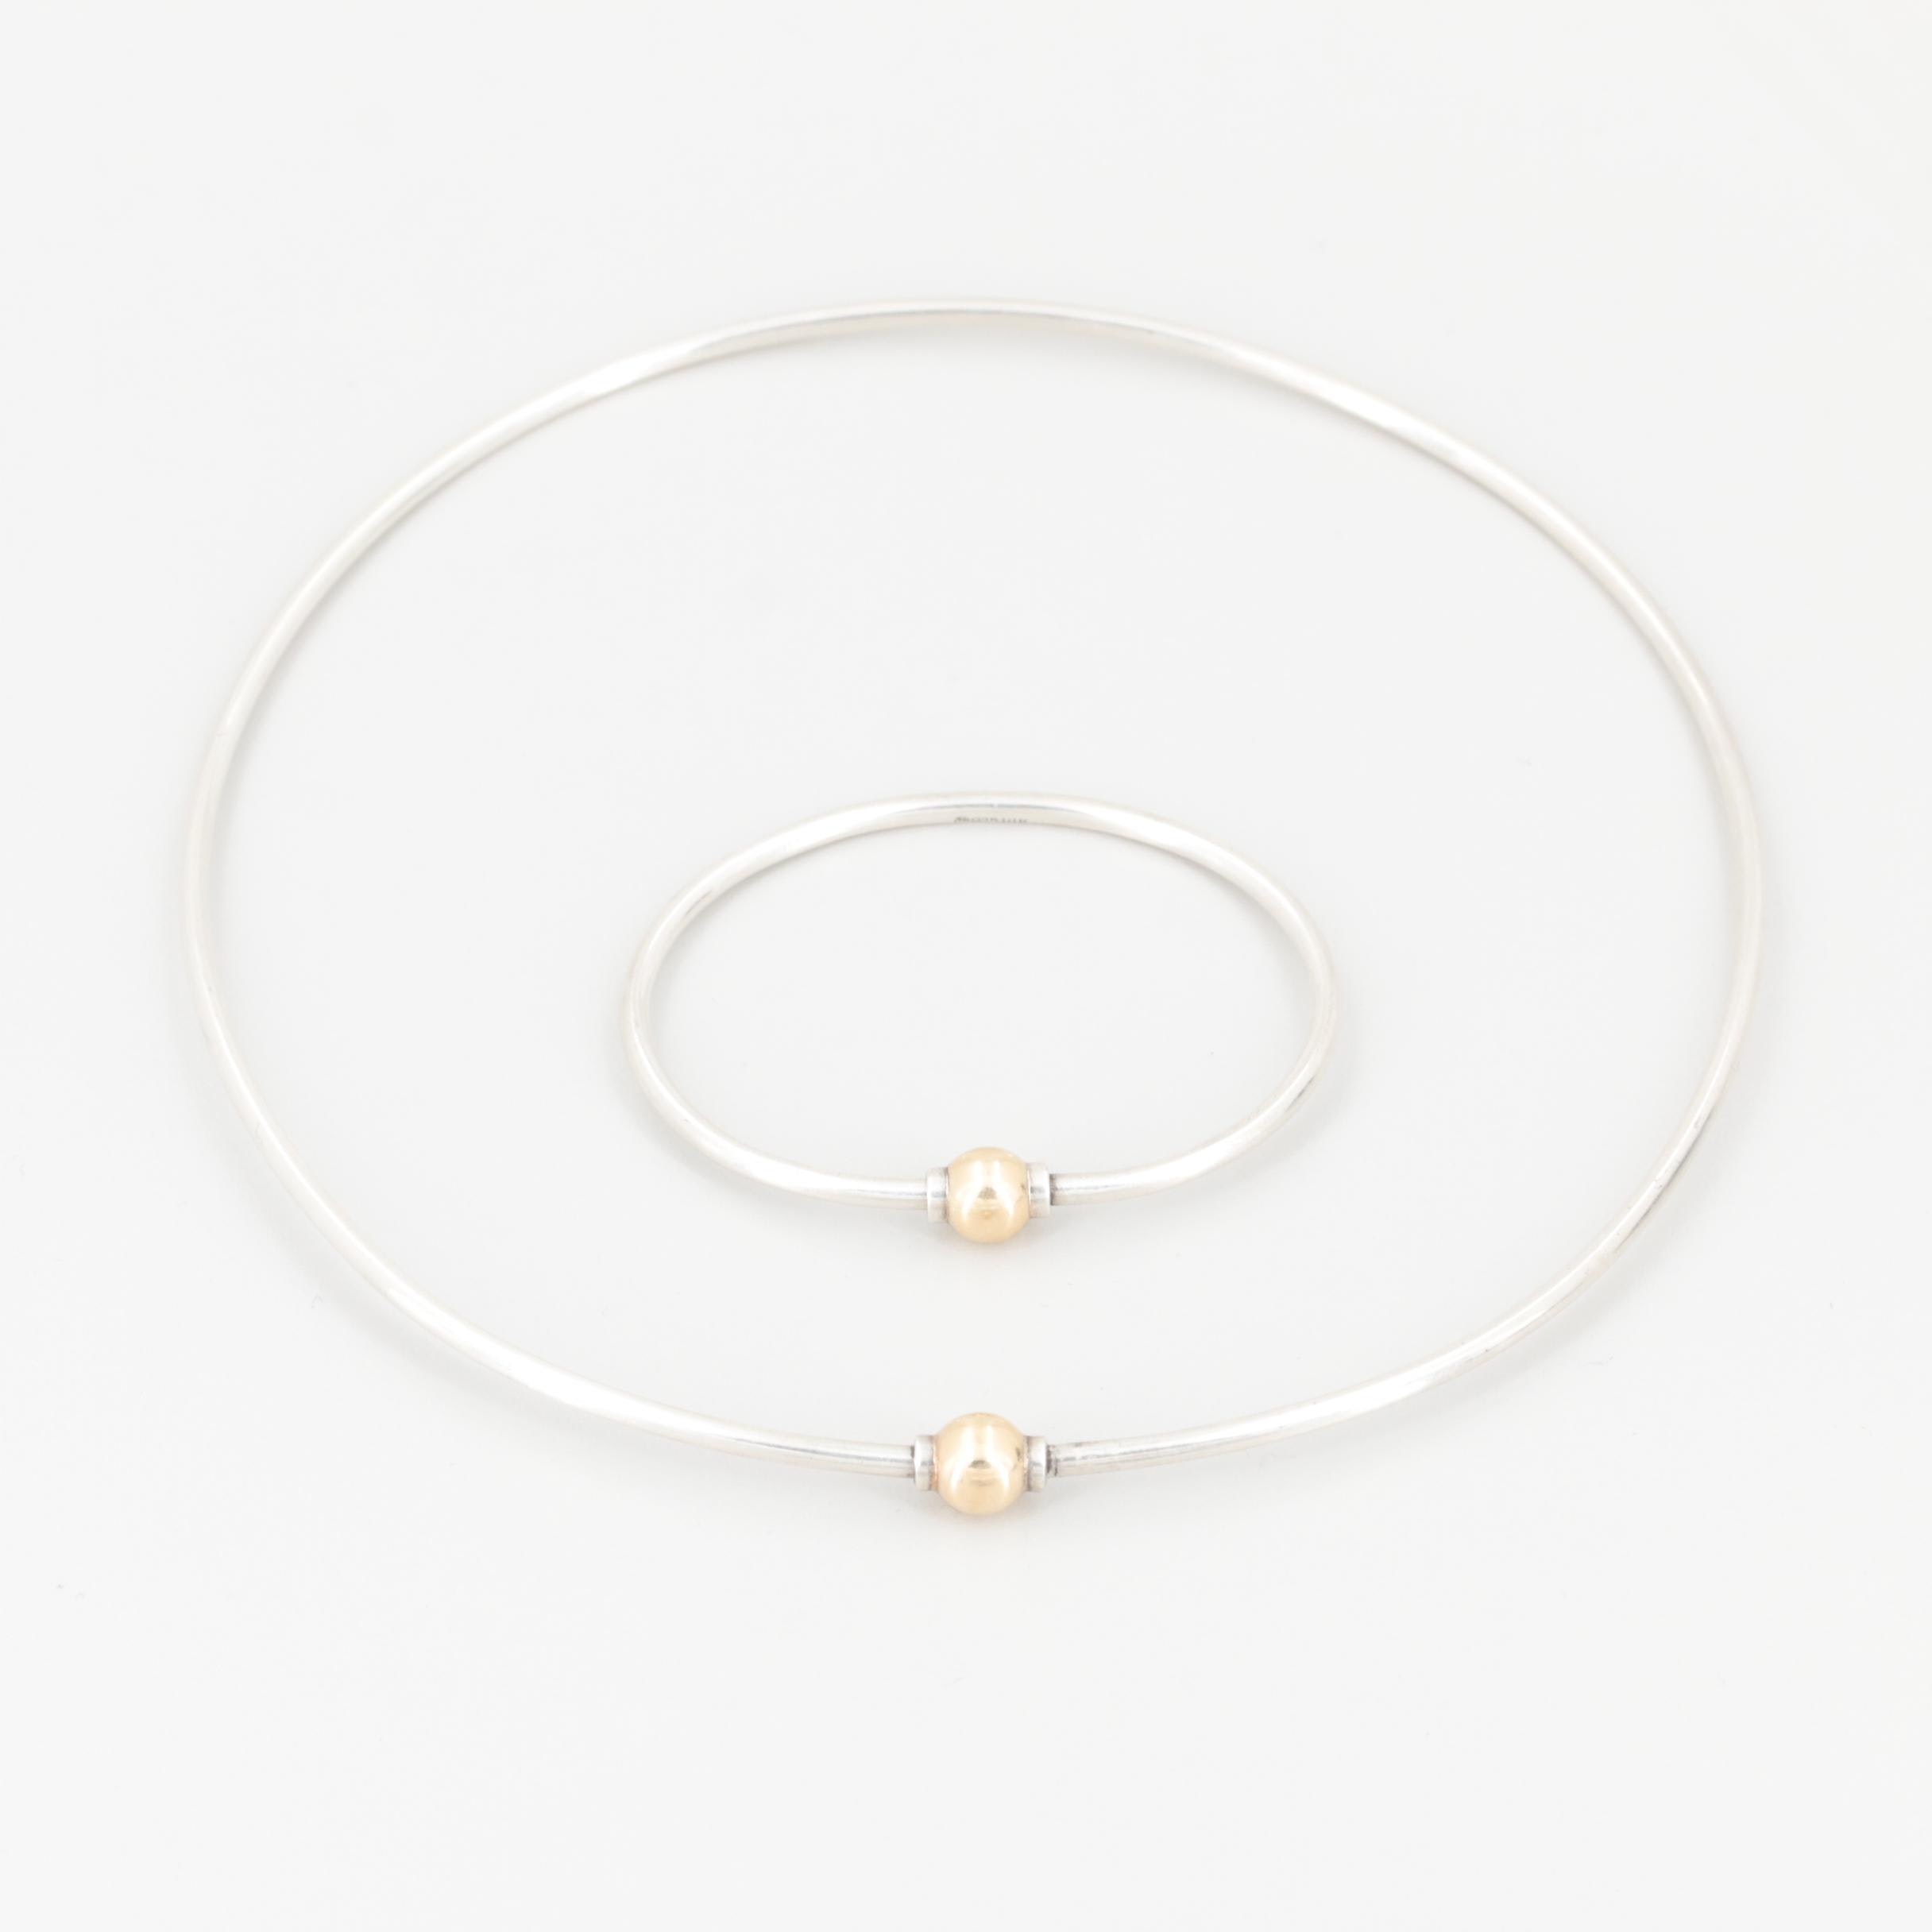 Eden Sterling Silver Collar and Bracelet Set with 14K Gold Accents